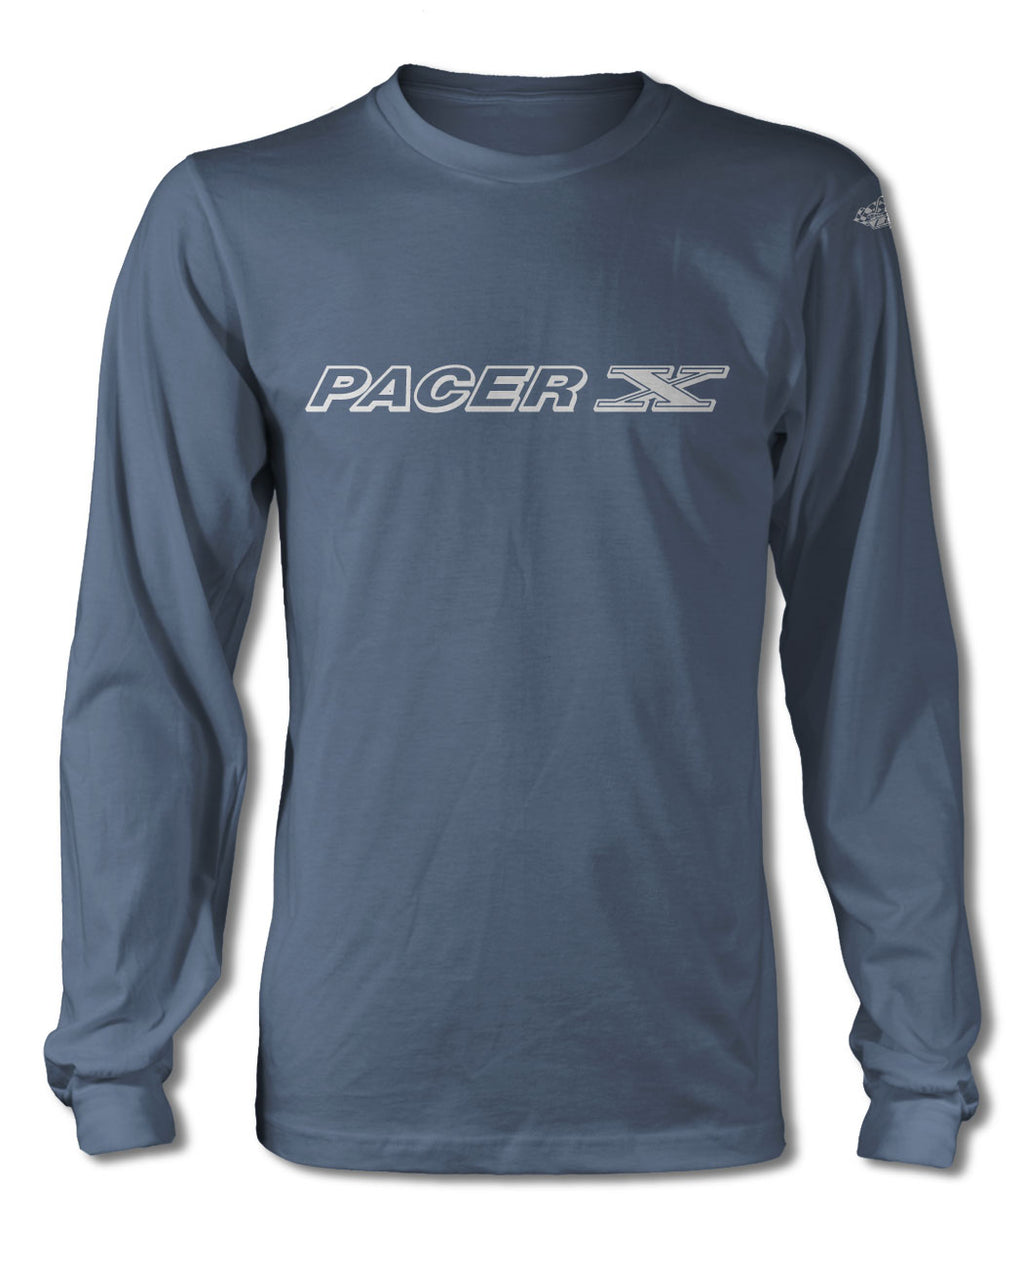 1975 - 1980 AMC Pacer X Emblem T-Shirt - Long Sleeves - Racing Emblem